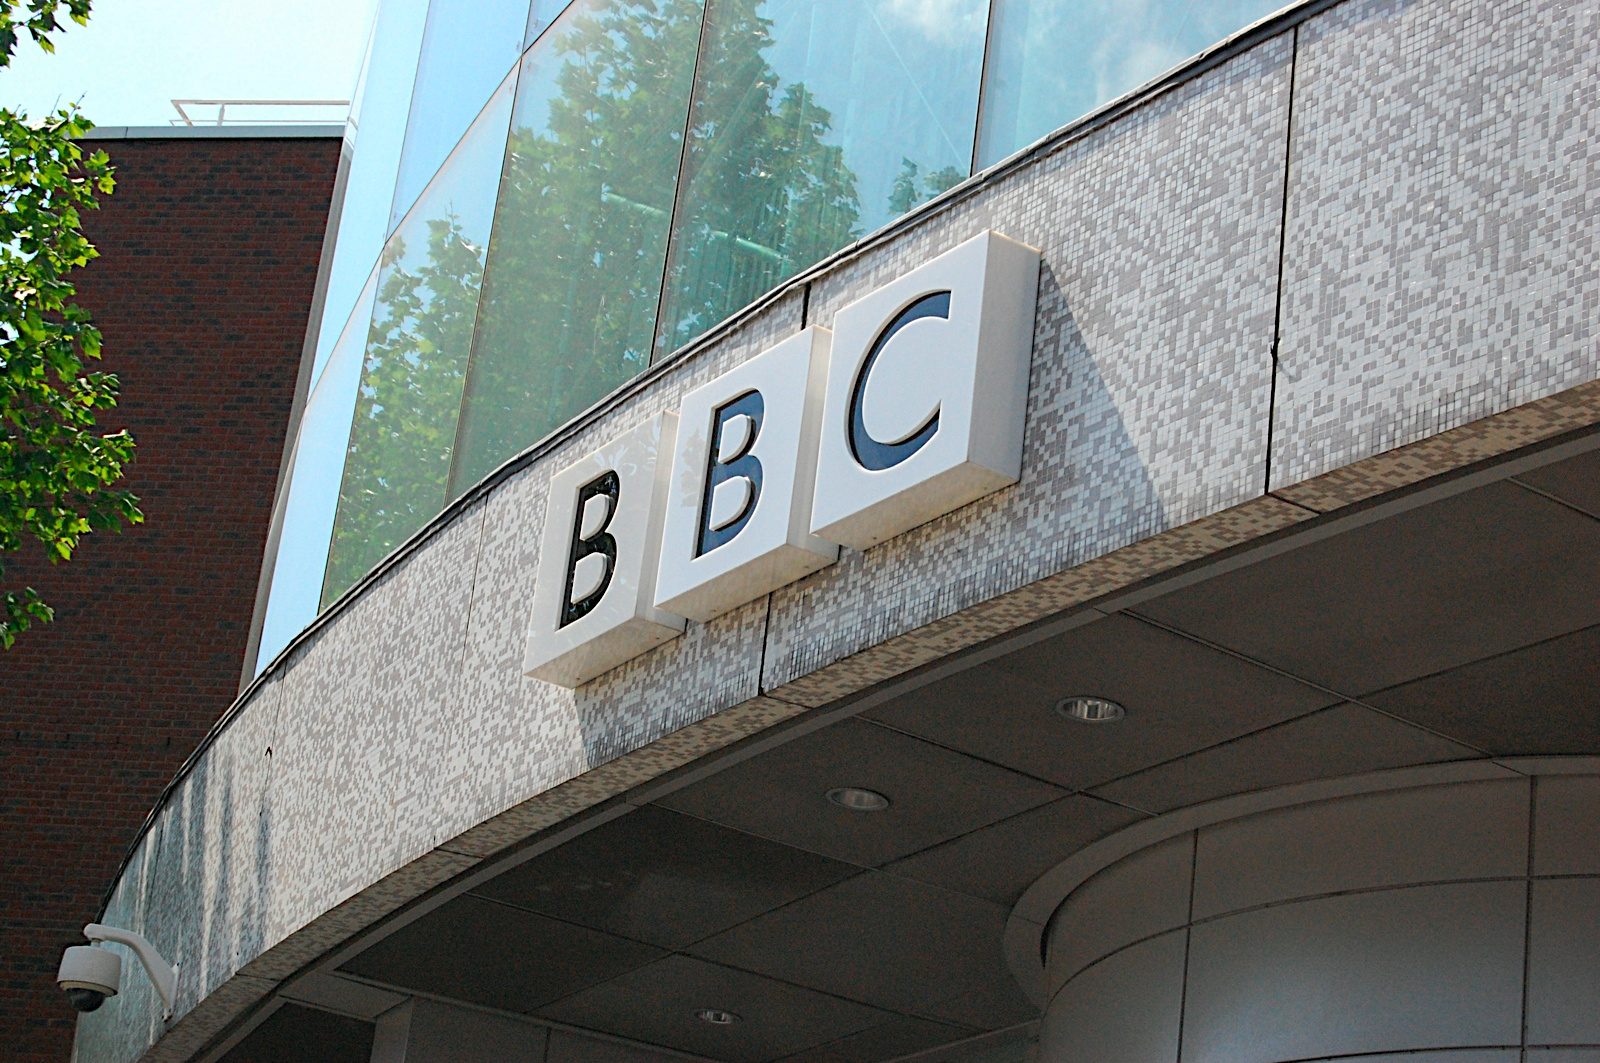 BBC Website outage caused by network failures, takes 5 hours to fully recover [Updated]